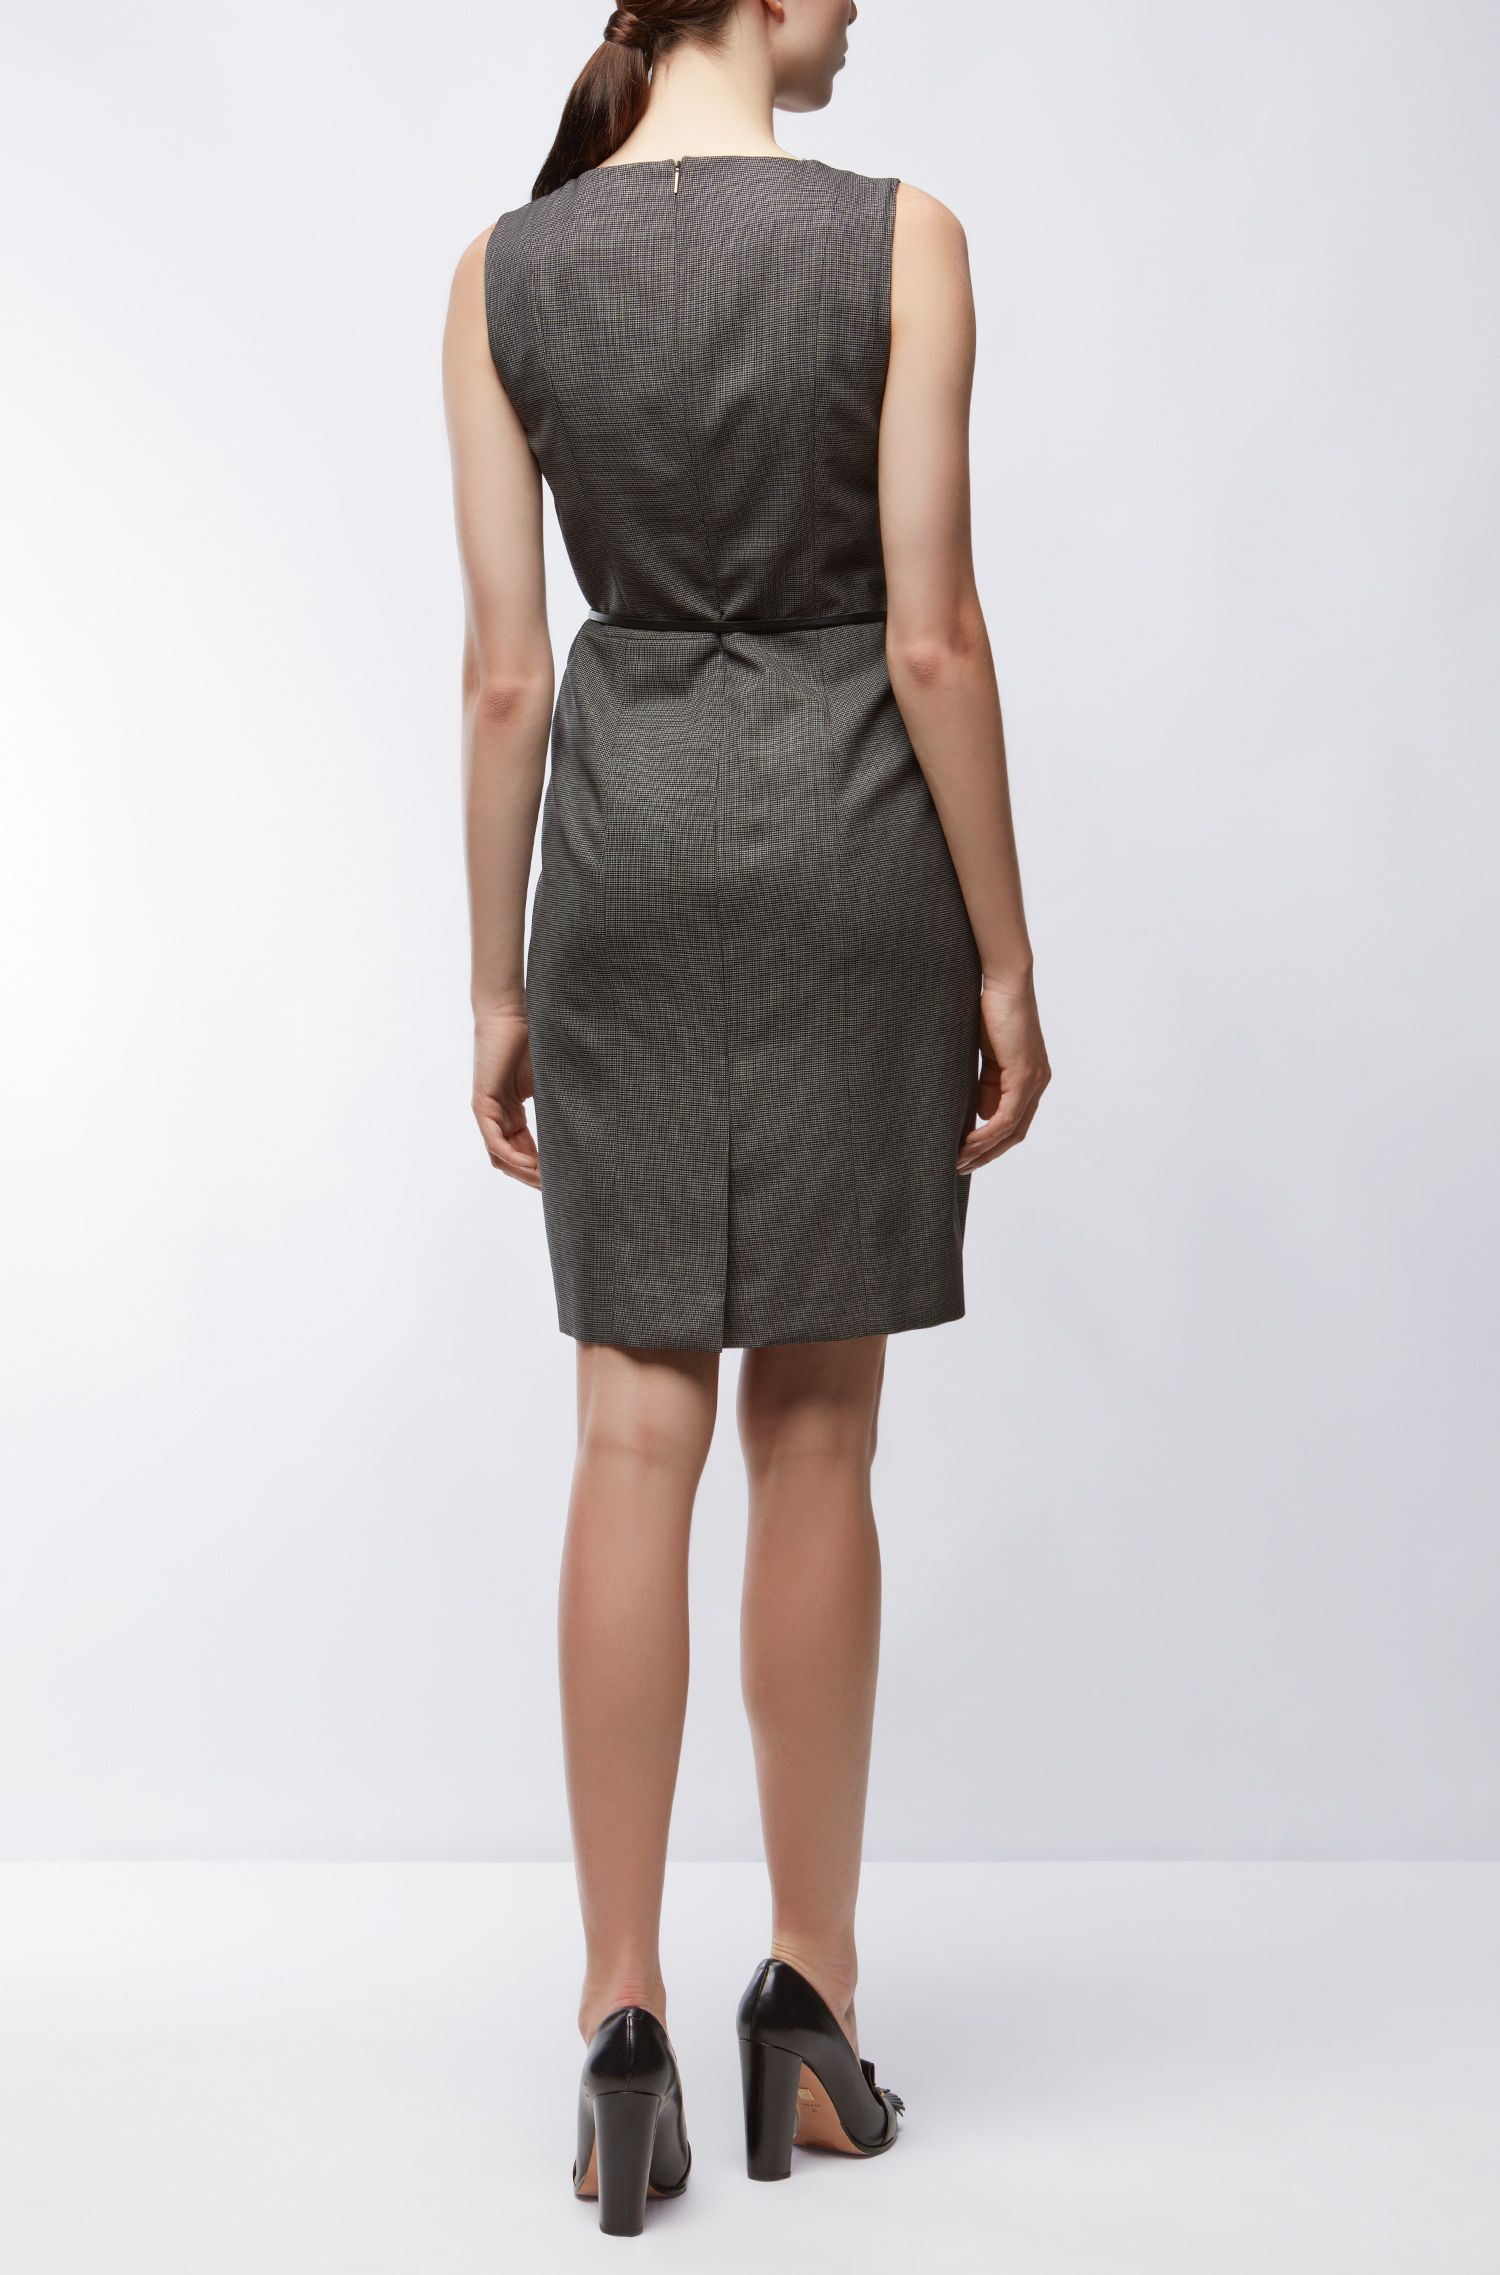 Stretch Virgin Wool Sheath Dress | Dalanda, Patterned